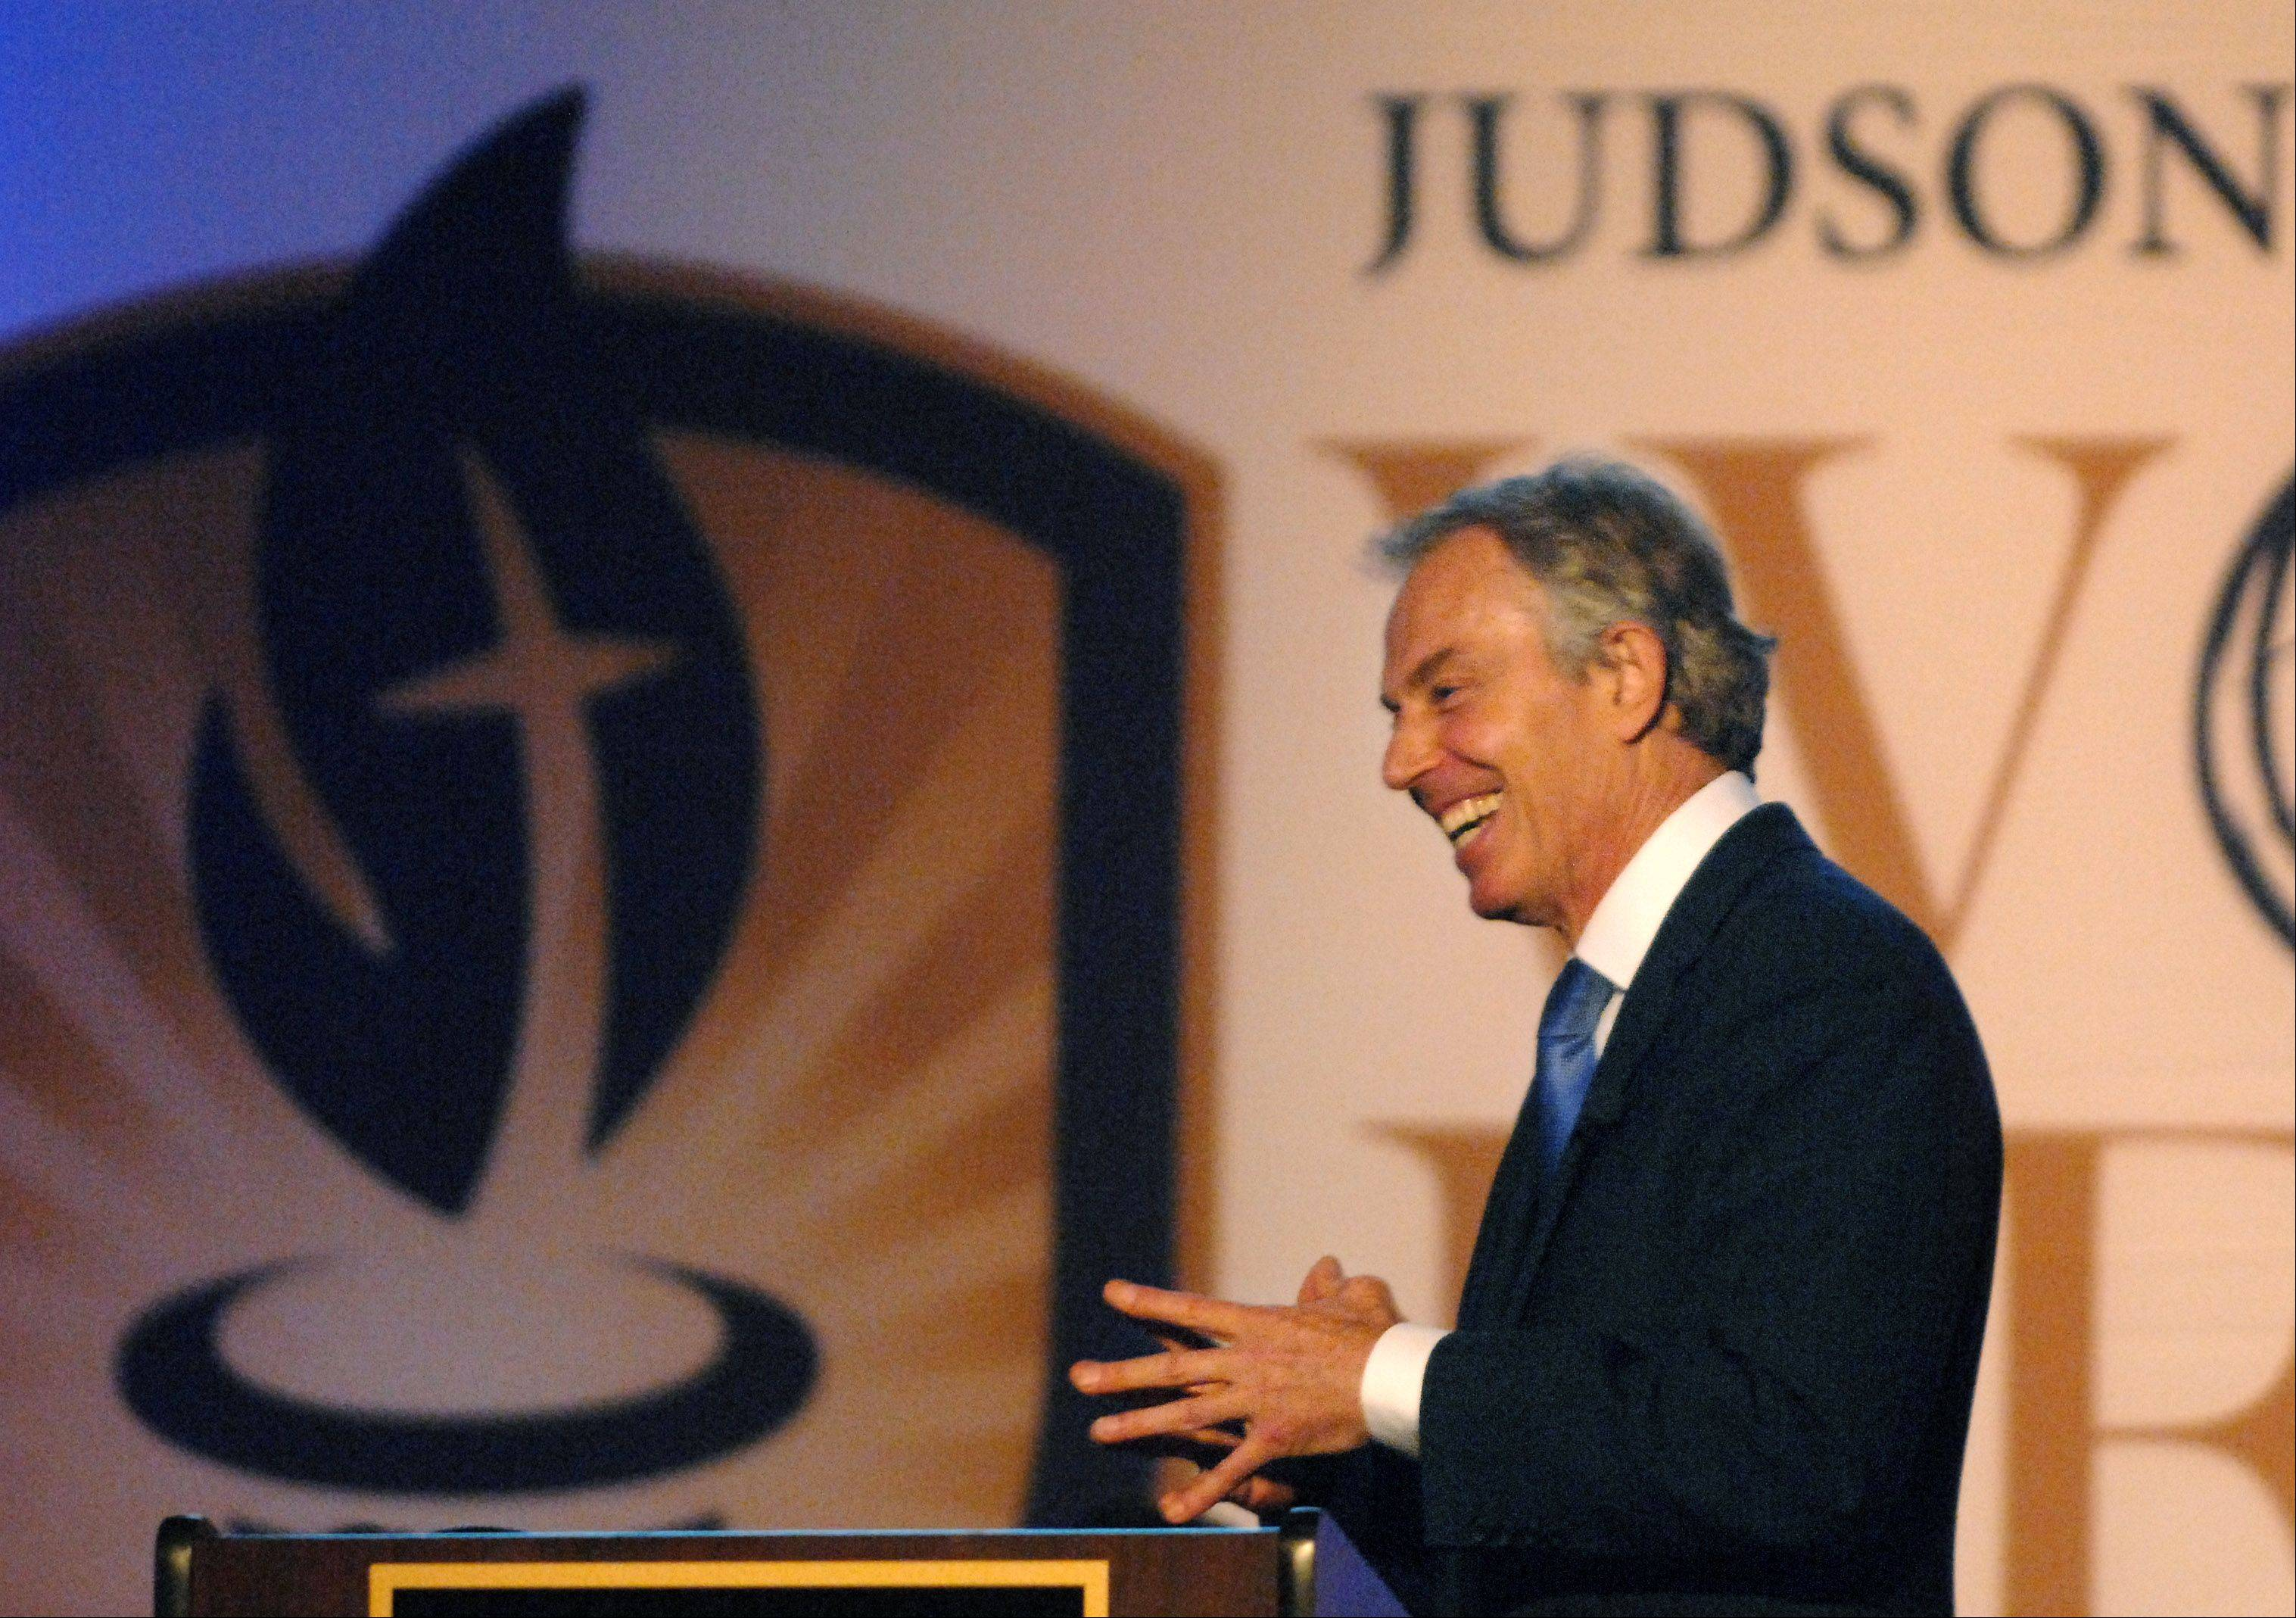 What Tony Blair's Elgin visit meant for local police